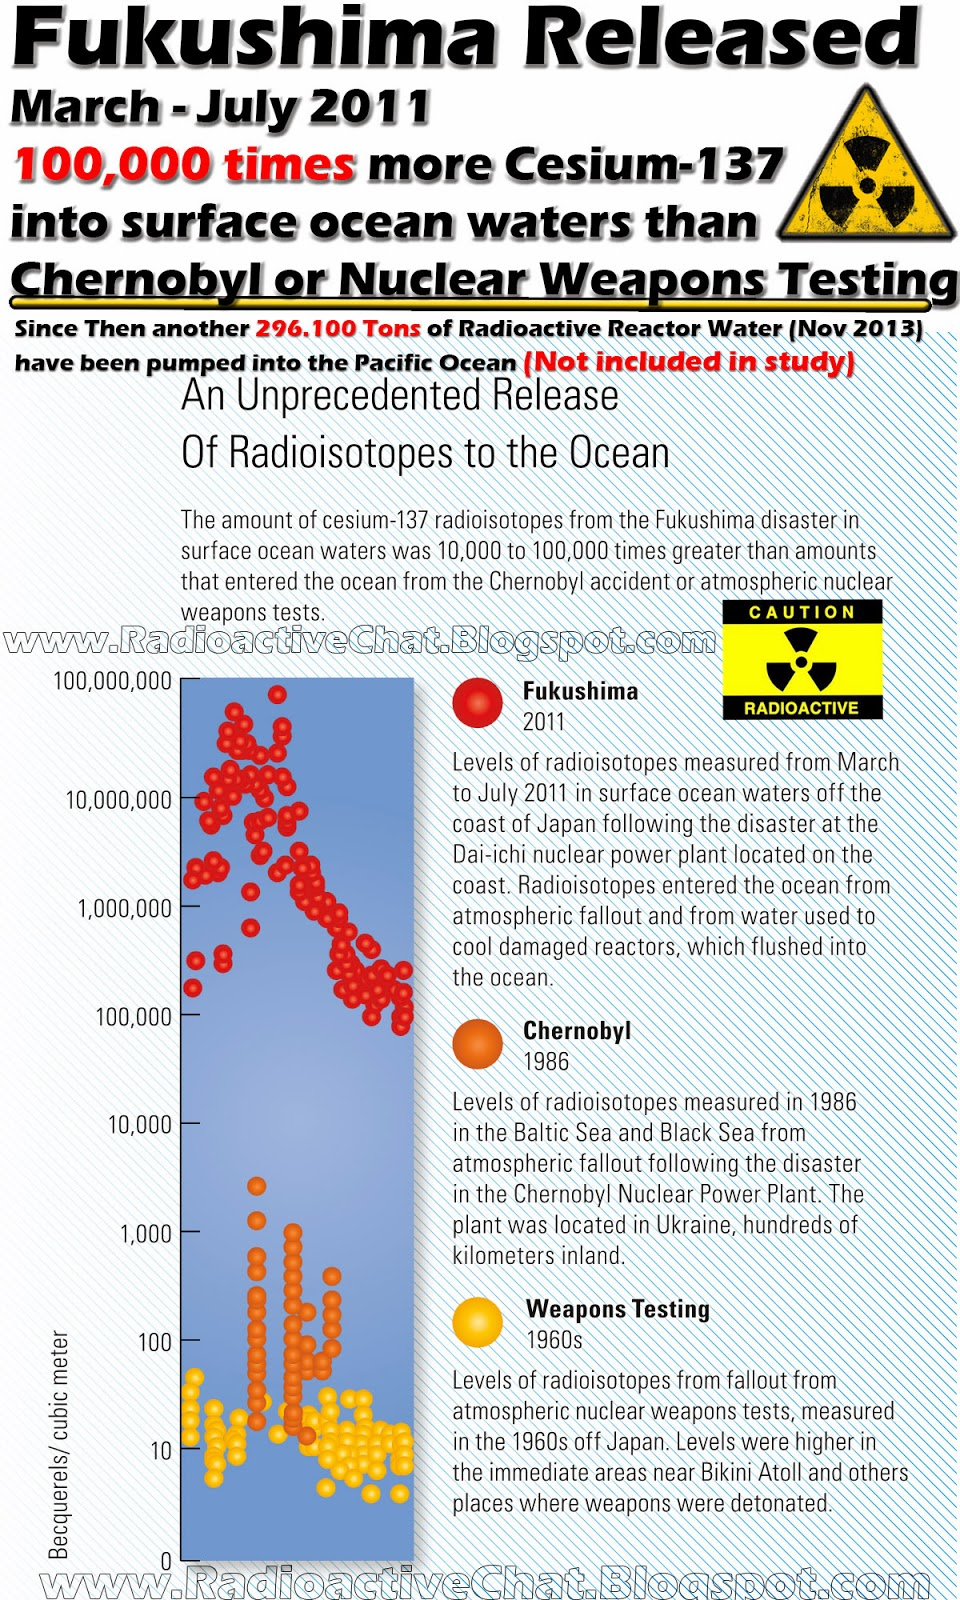 Fukushima Released 100.000 Times more Cesium-137 Into Surface Ocean Waters Than Chernobyl or Nuclear Weapons Testing